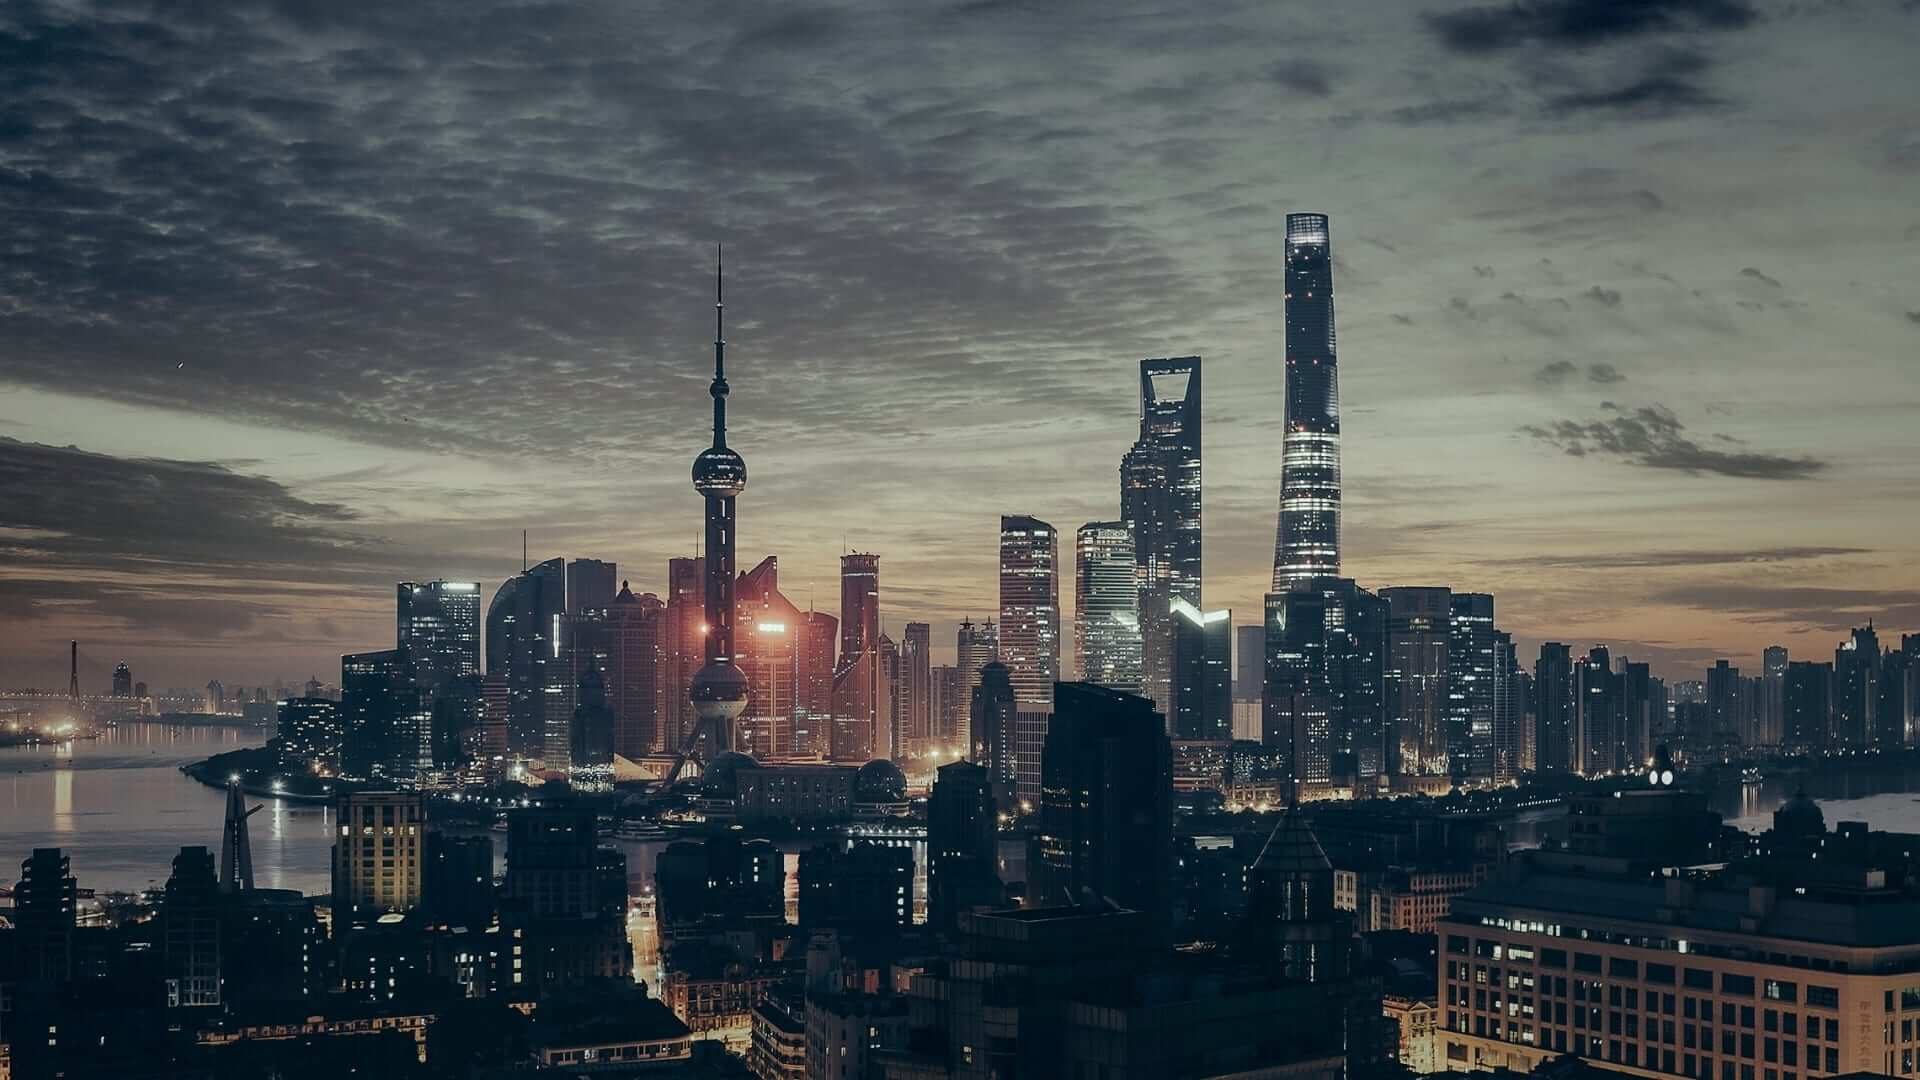 Illuminated buildings during a claudy night in Shanghai.